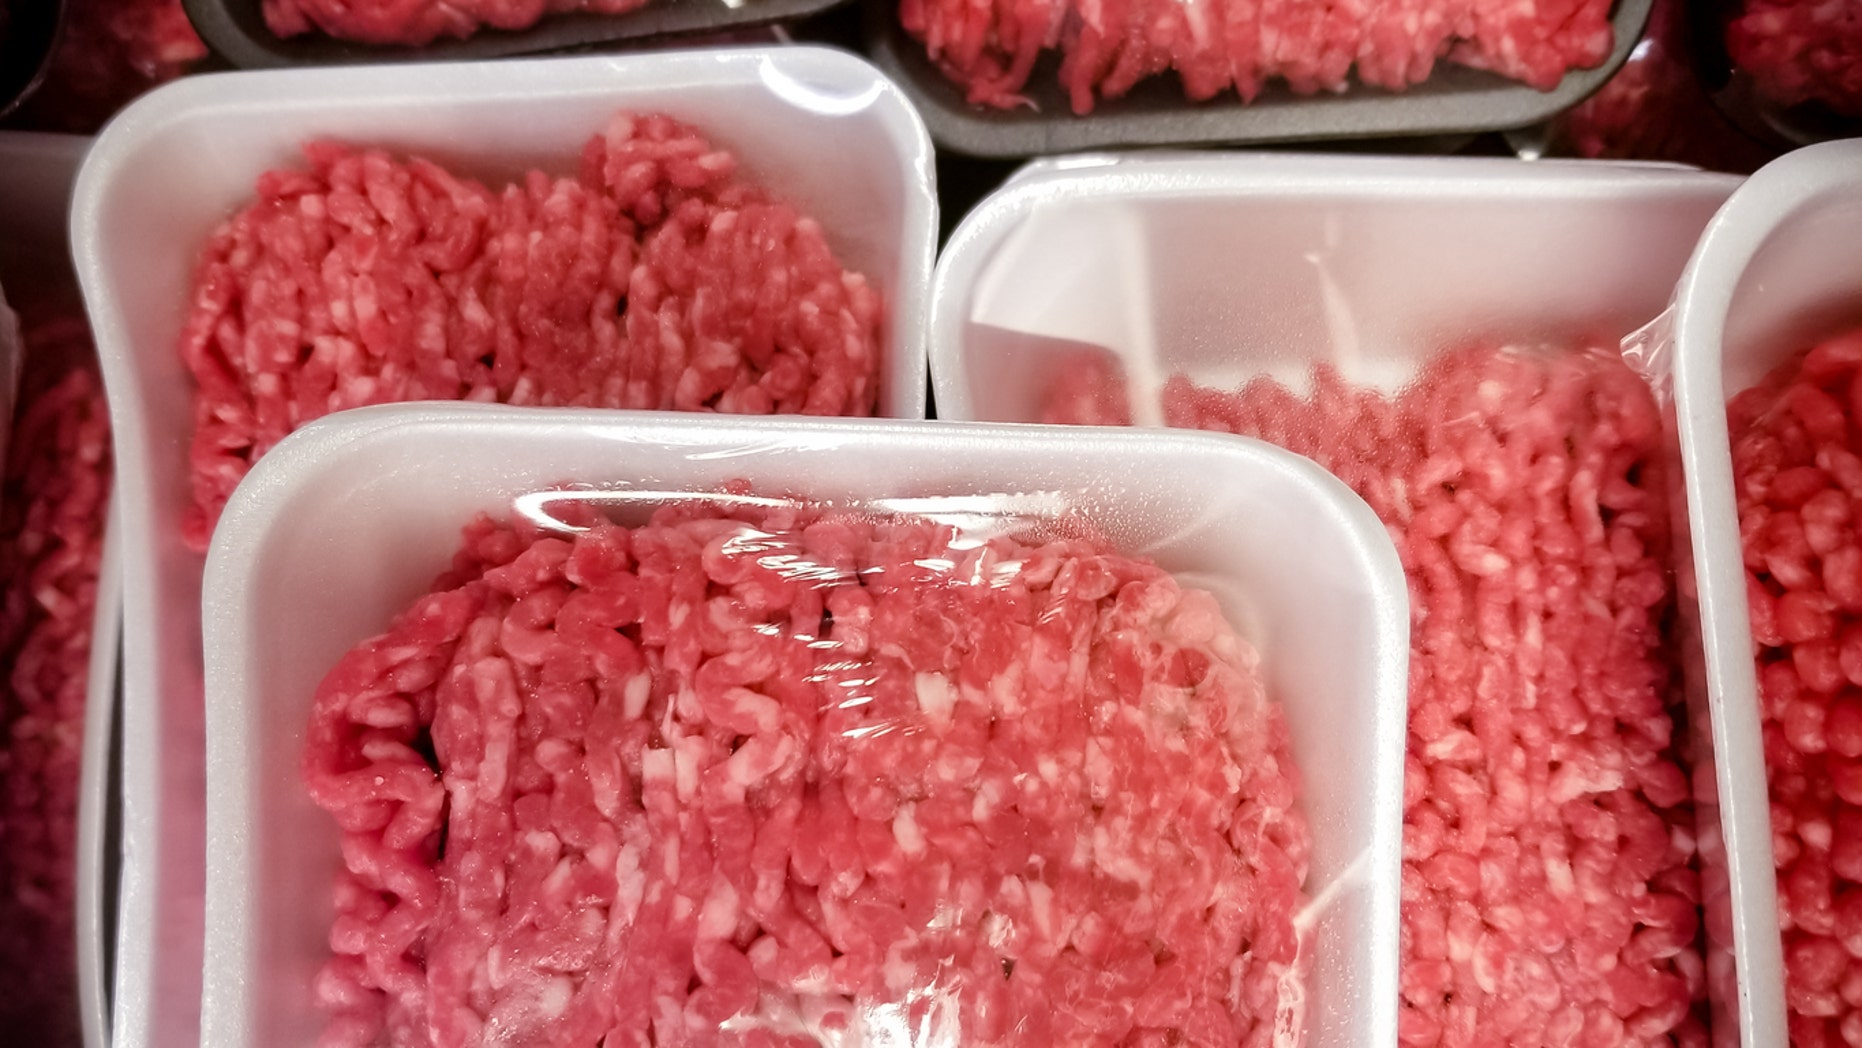 Ground Beef Likely Cause of Food Poisoning in Six States